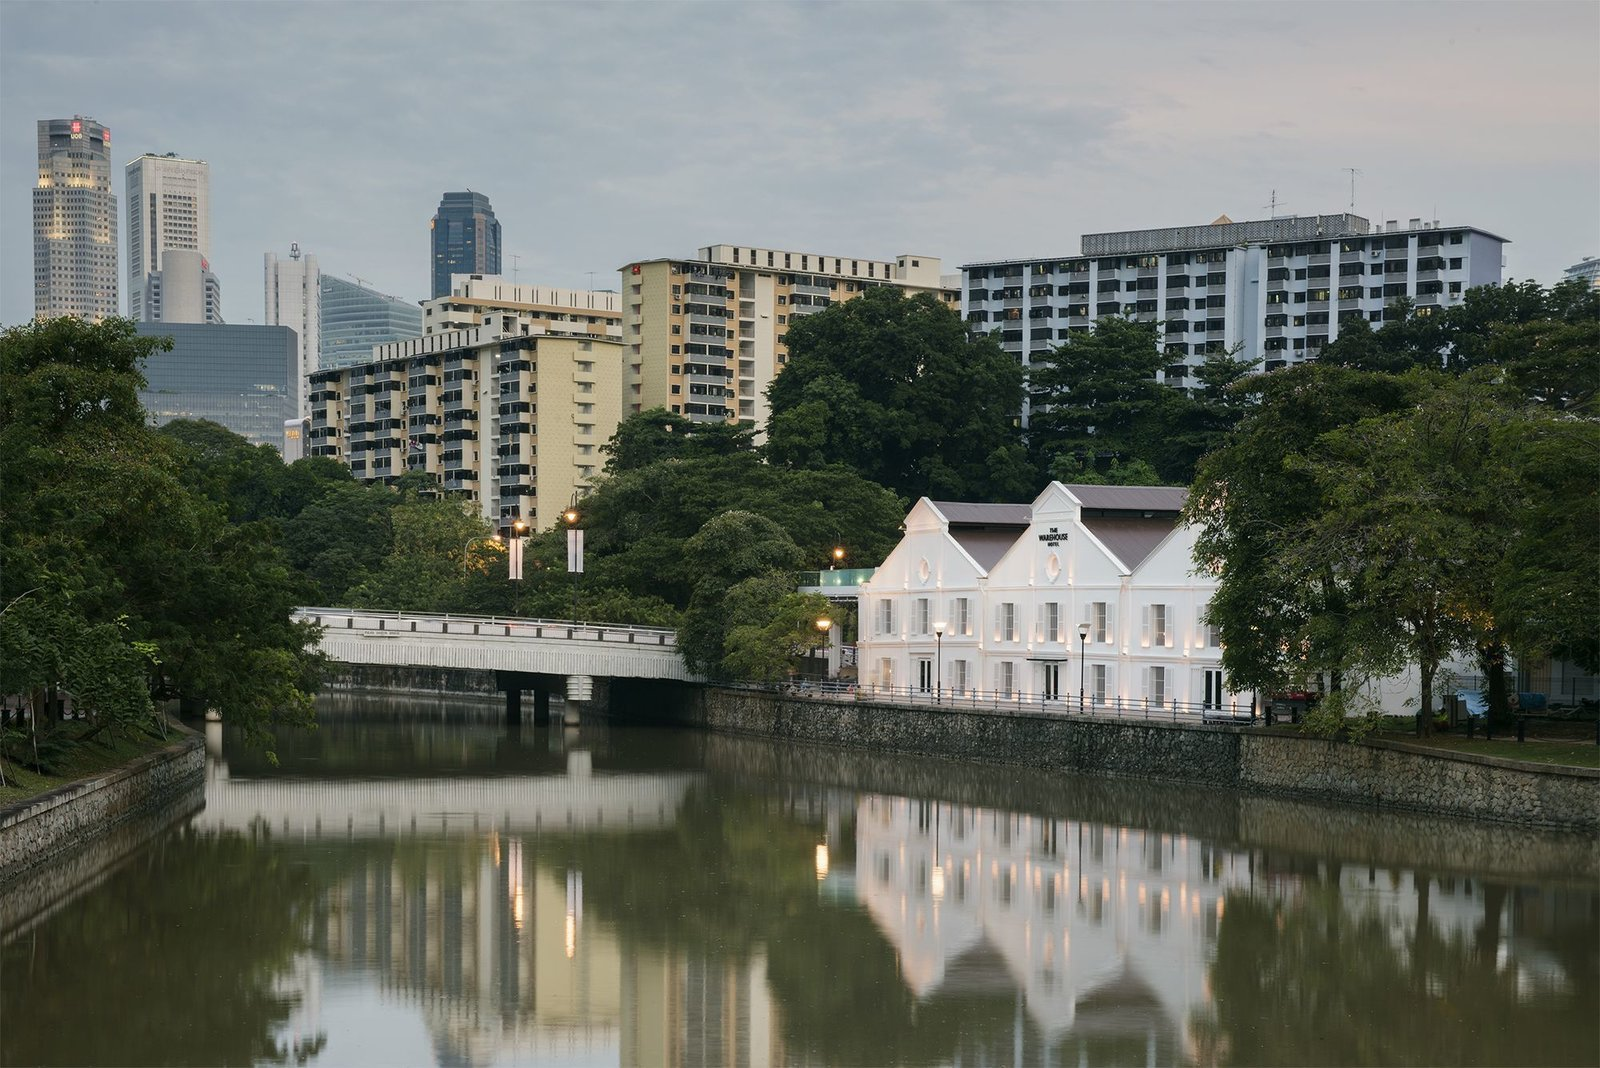 Photo 1 of 14 in Experience a Modern, Eclectic Side of Singapore at One of These 10 City Stays